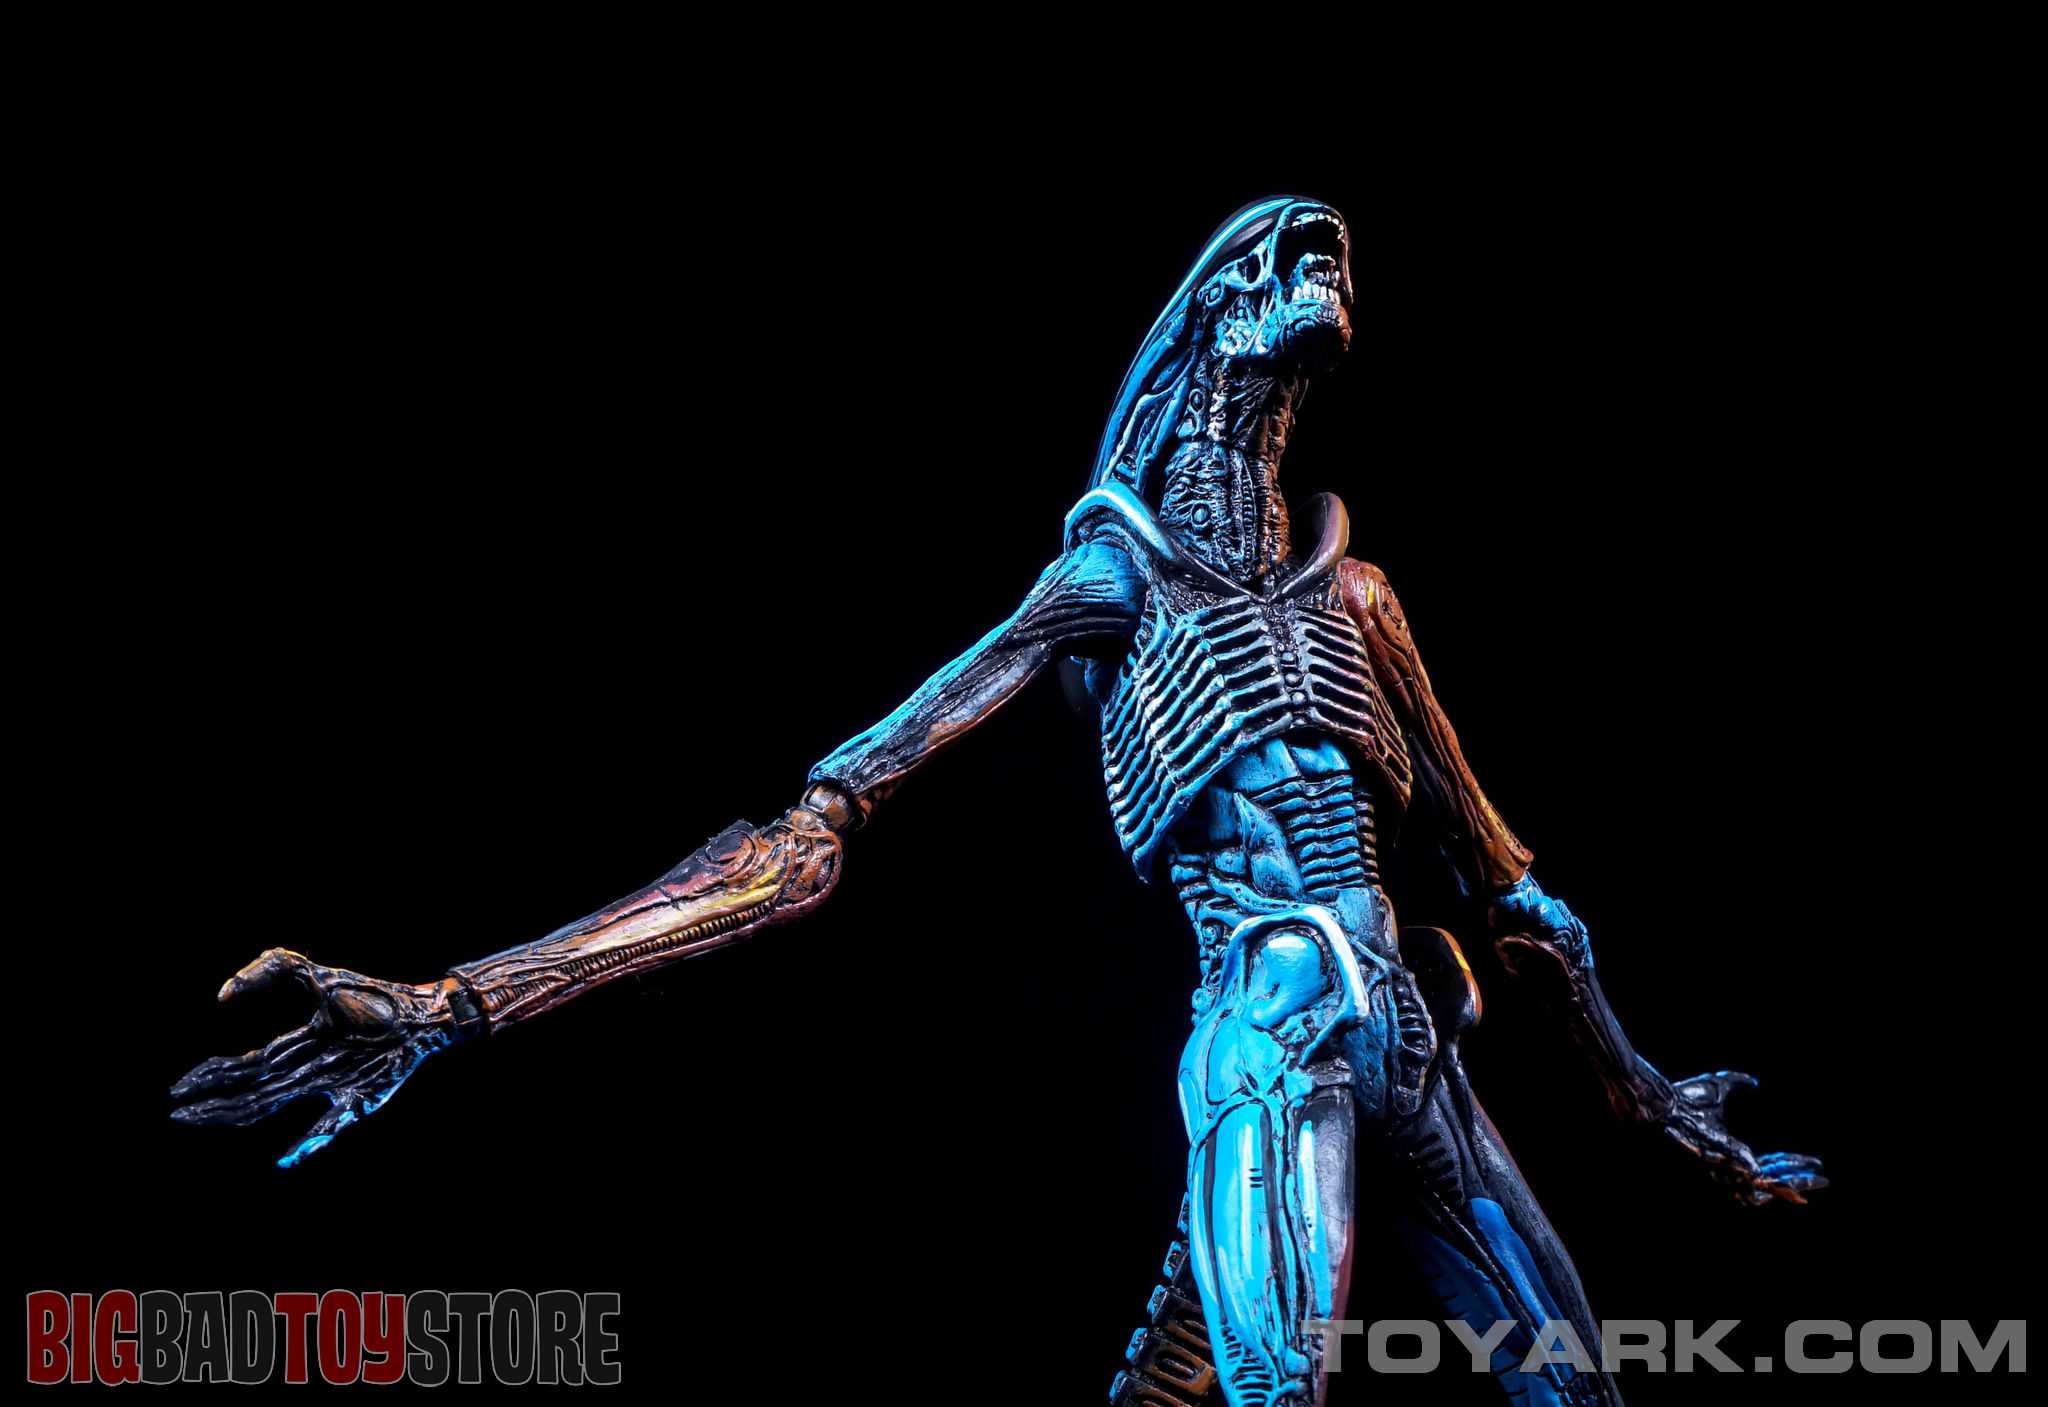 http://news.toyark.com/wp-content/uploads/sites/4/2015/06/NECA-NES-Dog-Alien-036.jpg